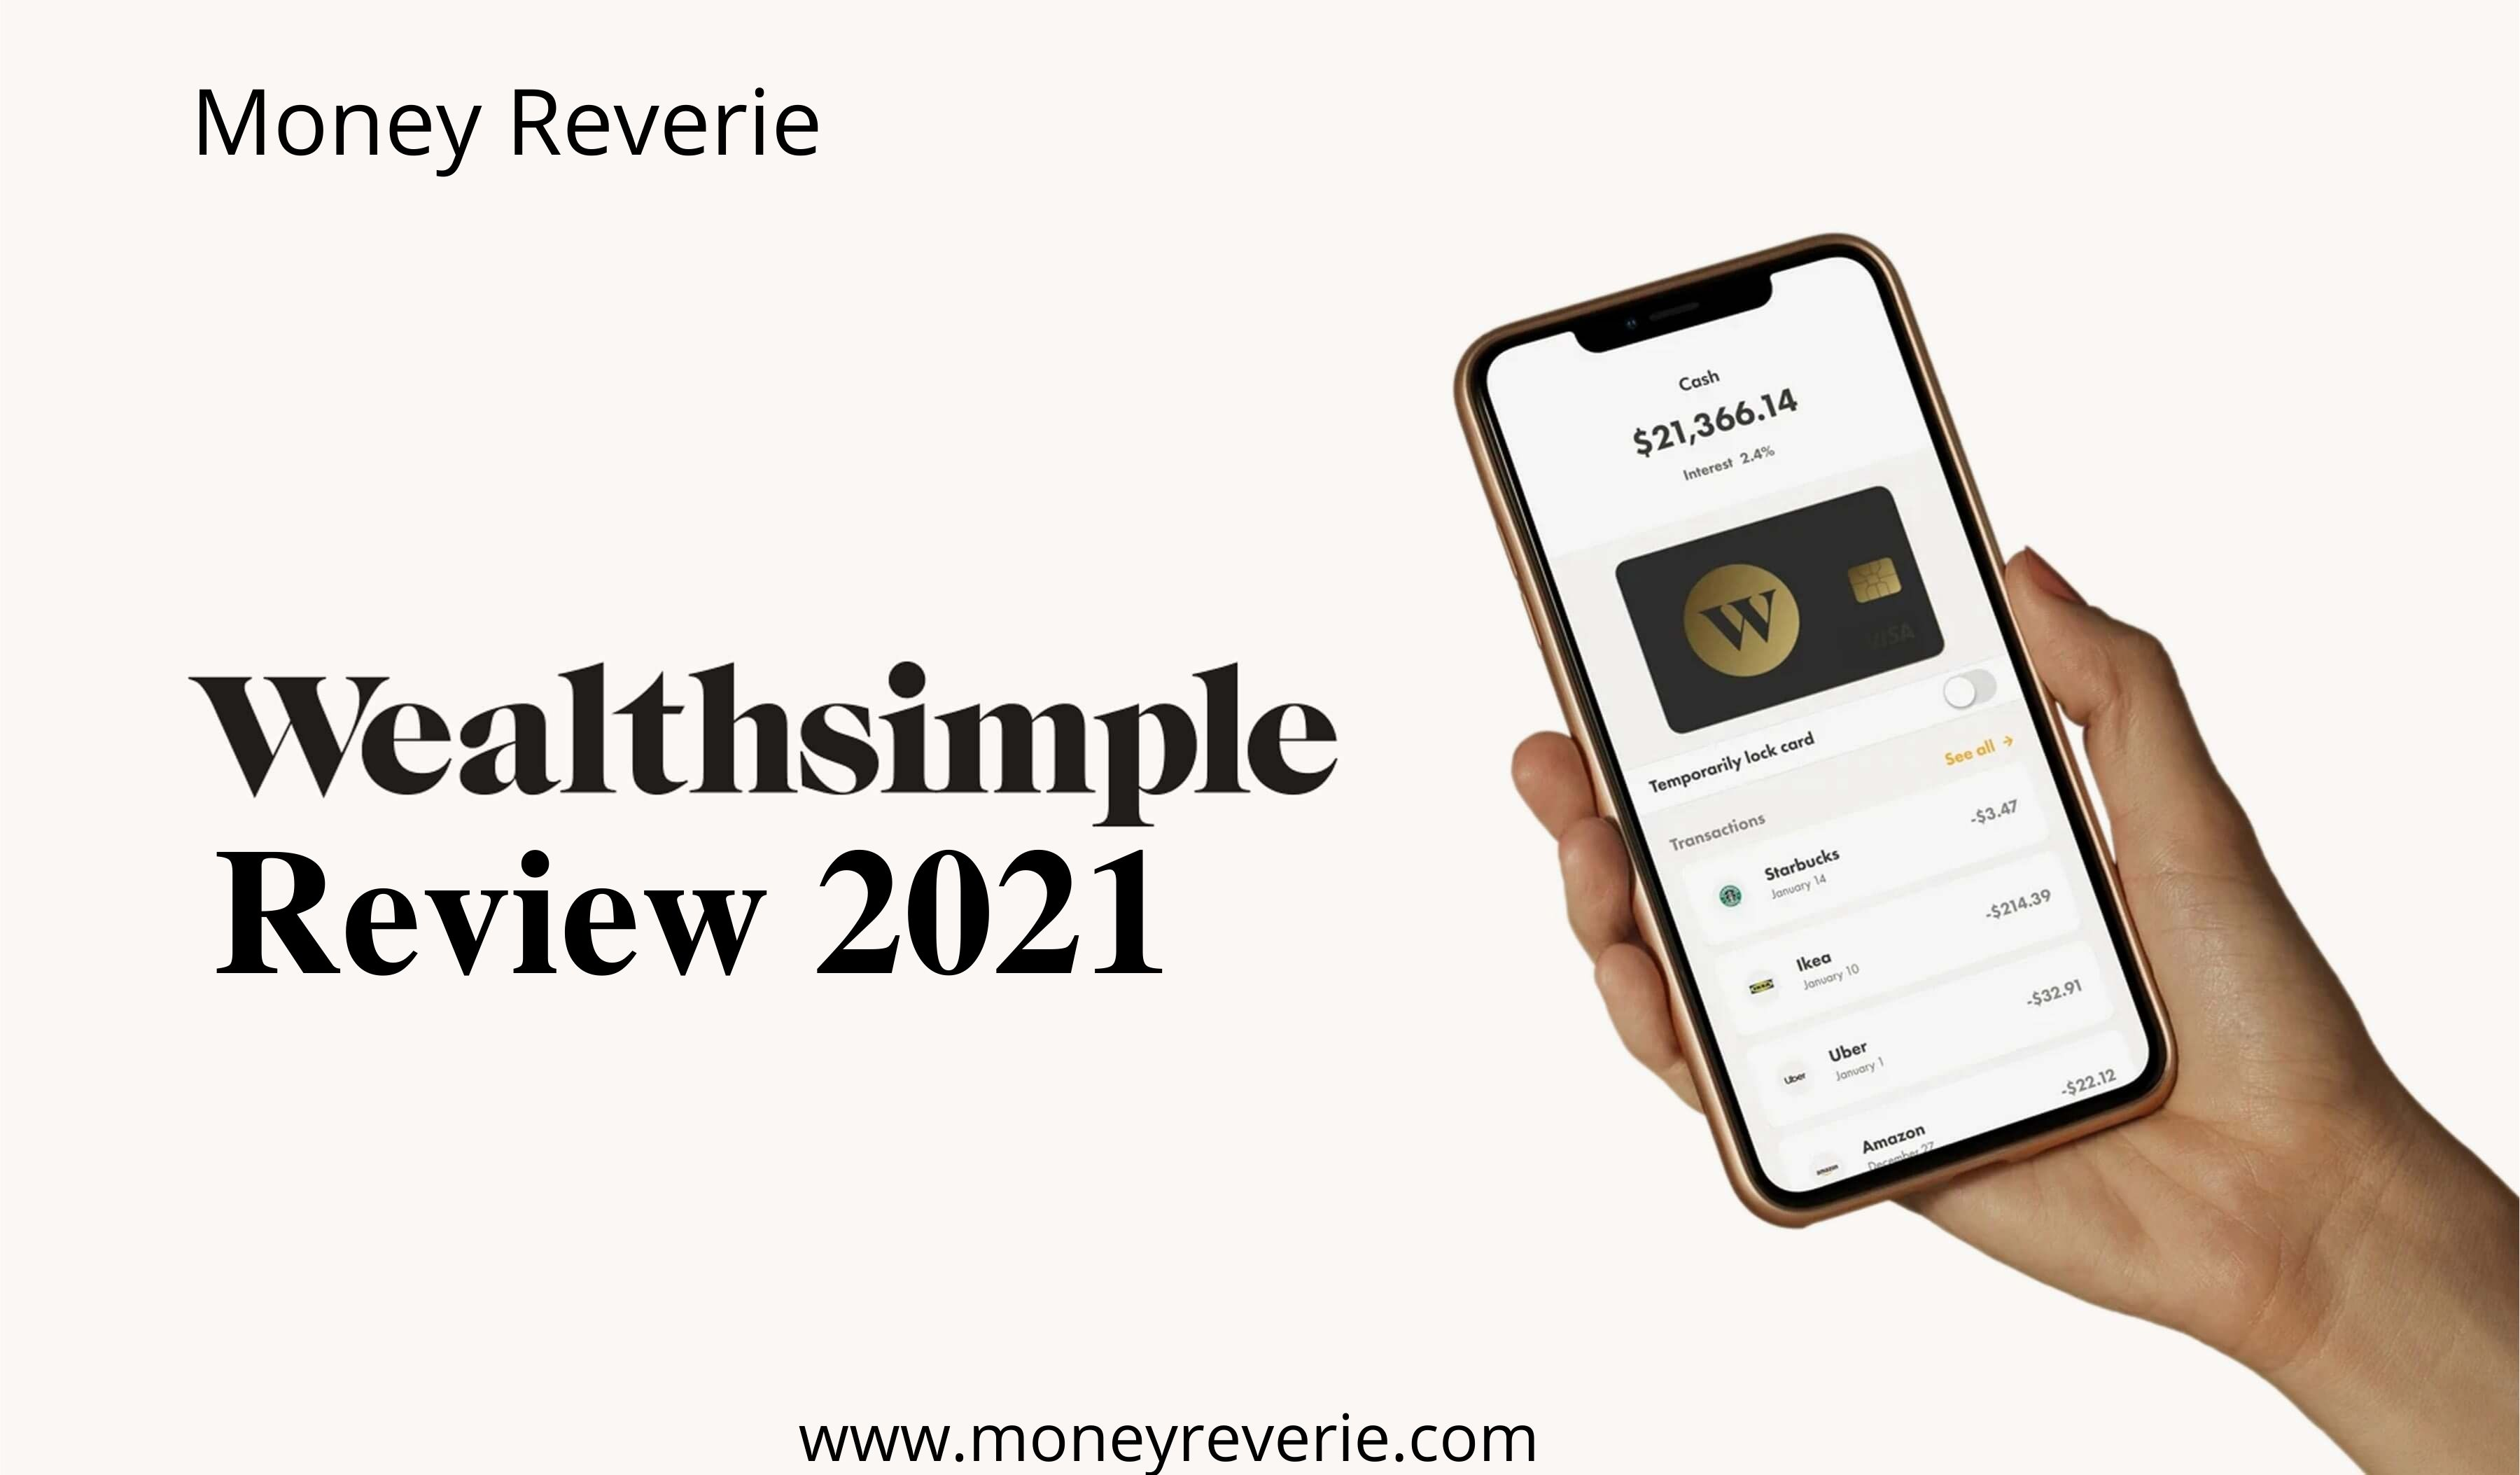 Wealthsimple Review 2021